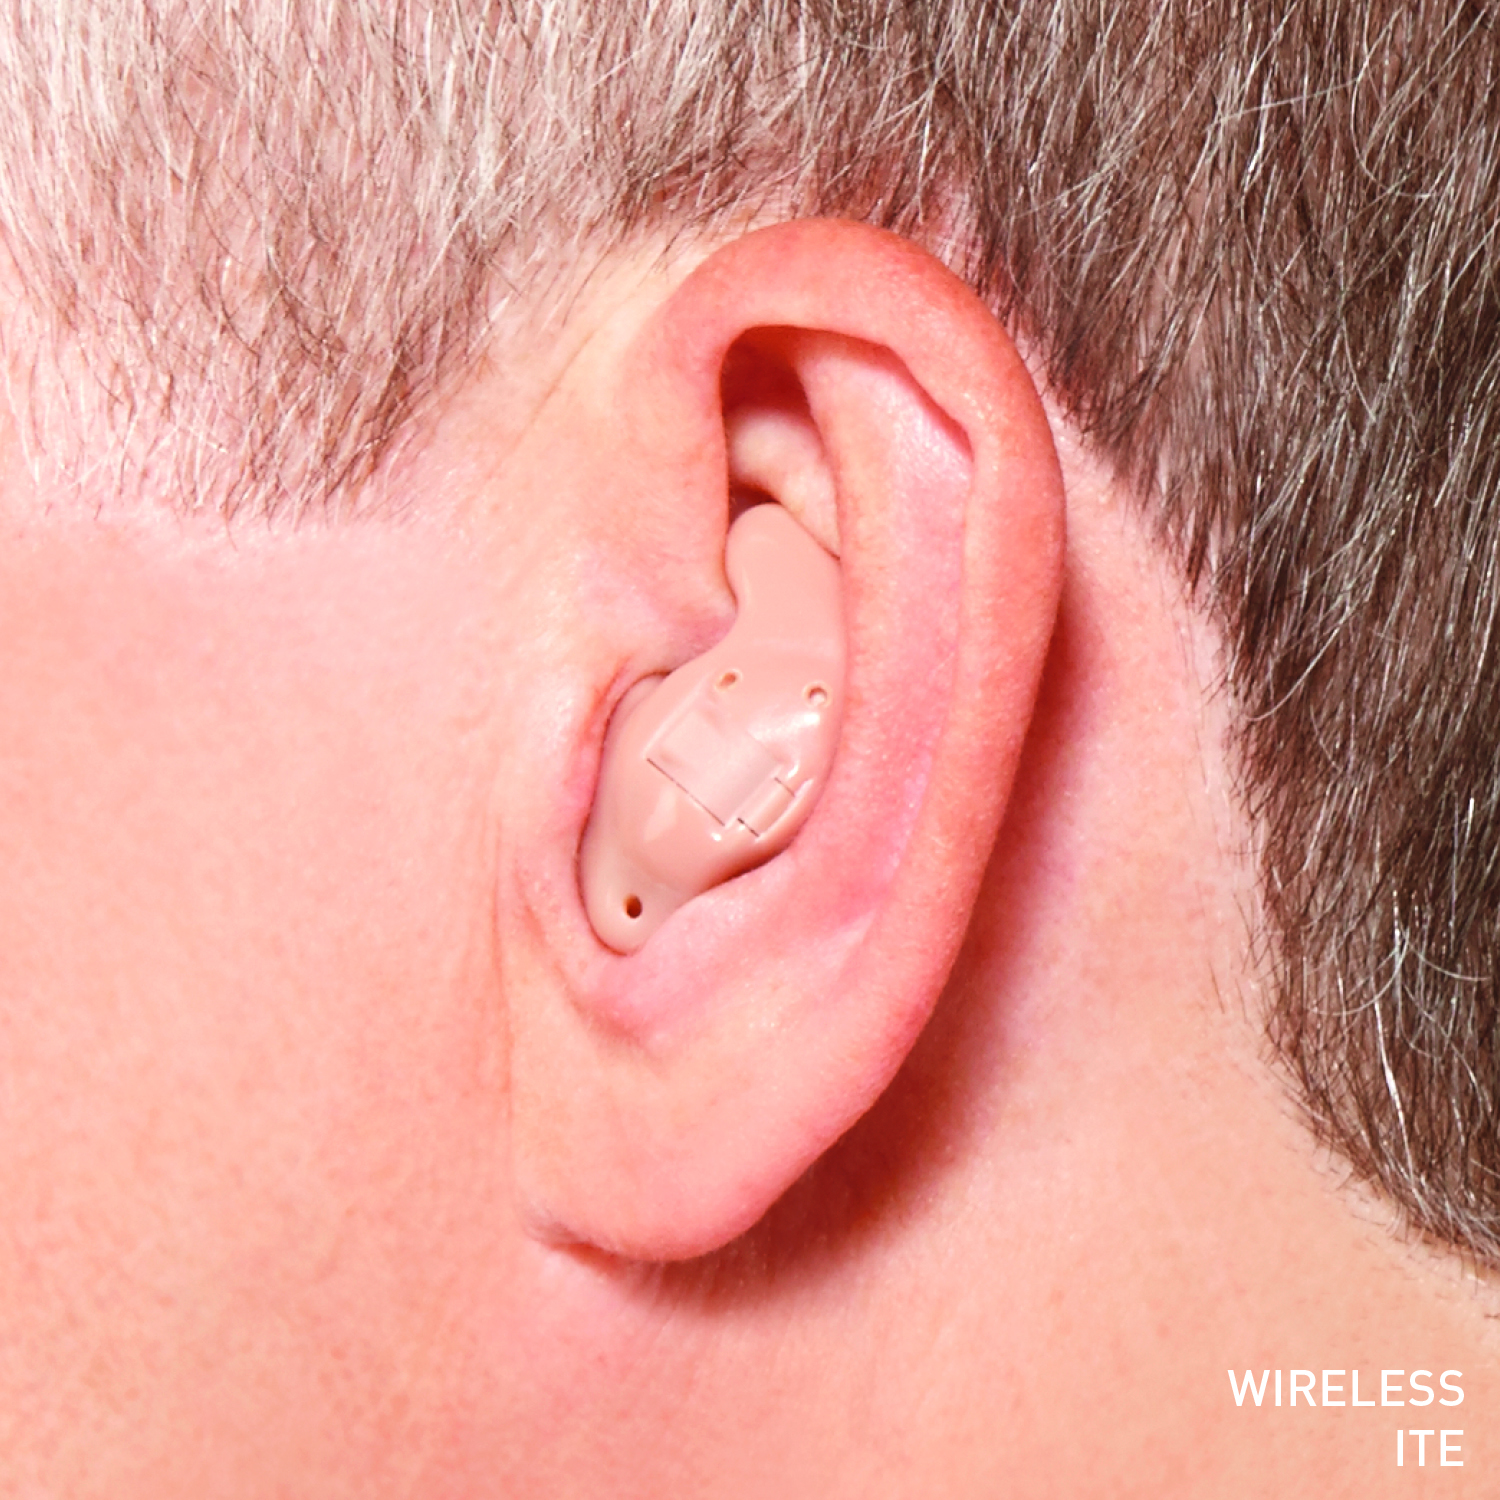 photo of Muse iQ on ear in situ